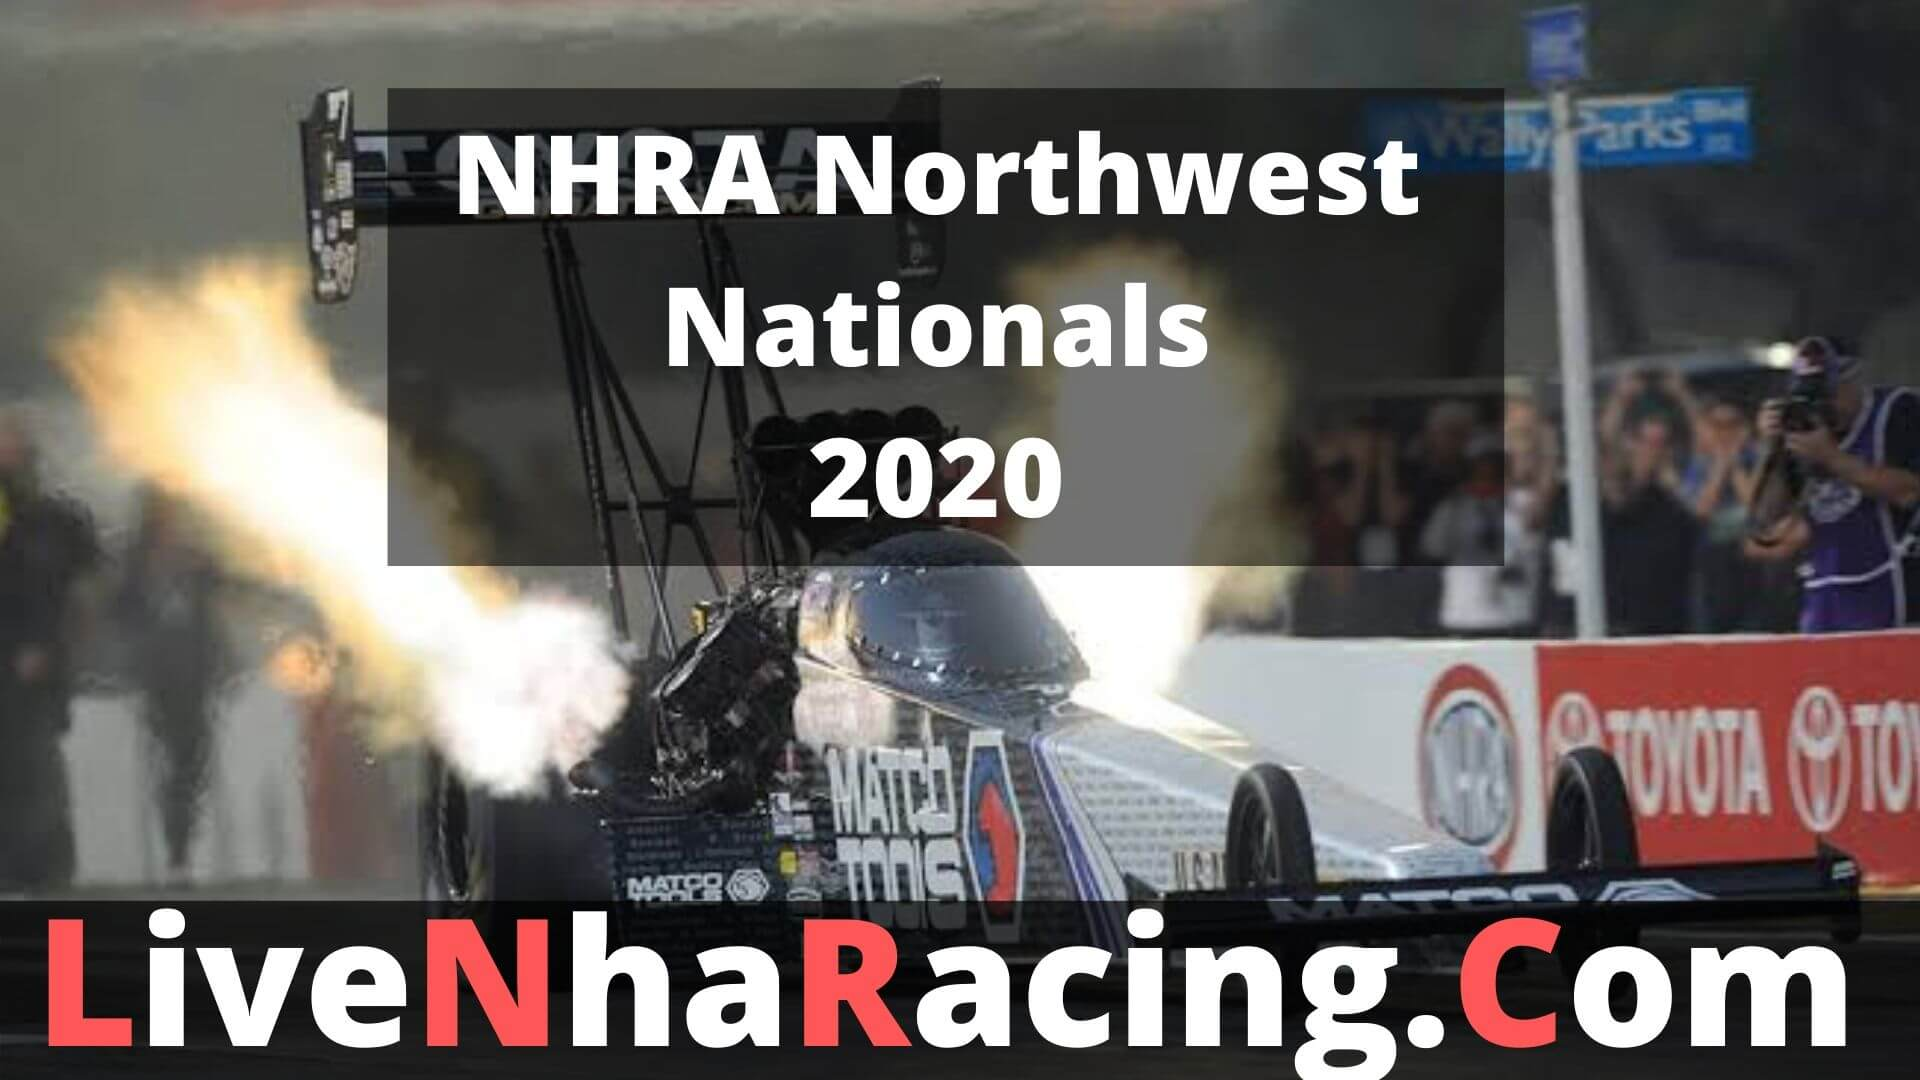 NHRA Northwest Nationals - Friday Nitro Live Stream 2020